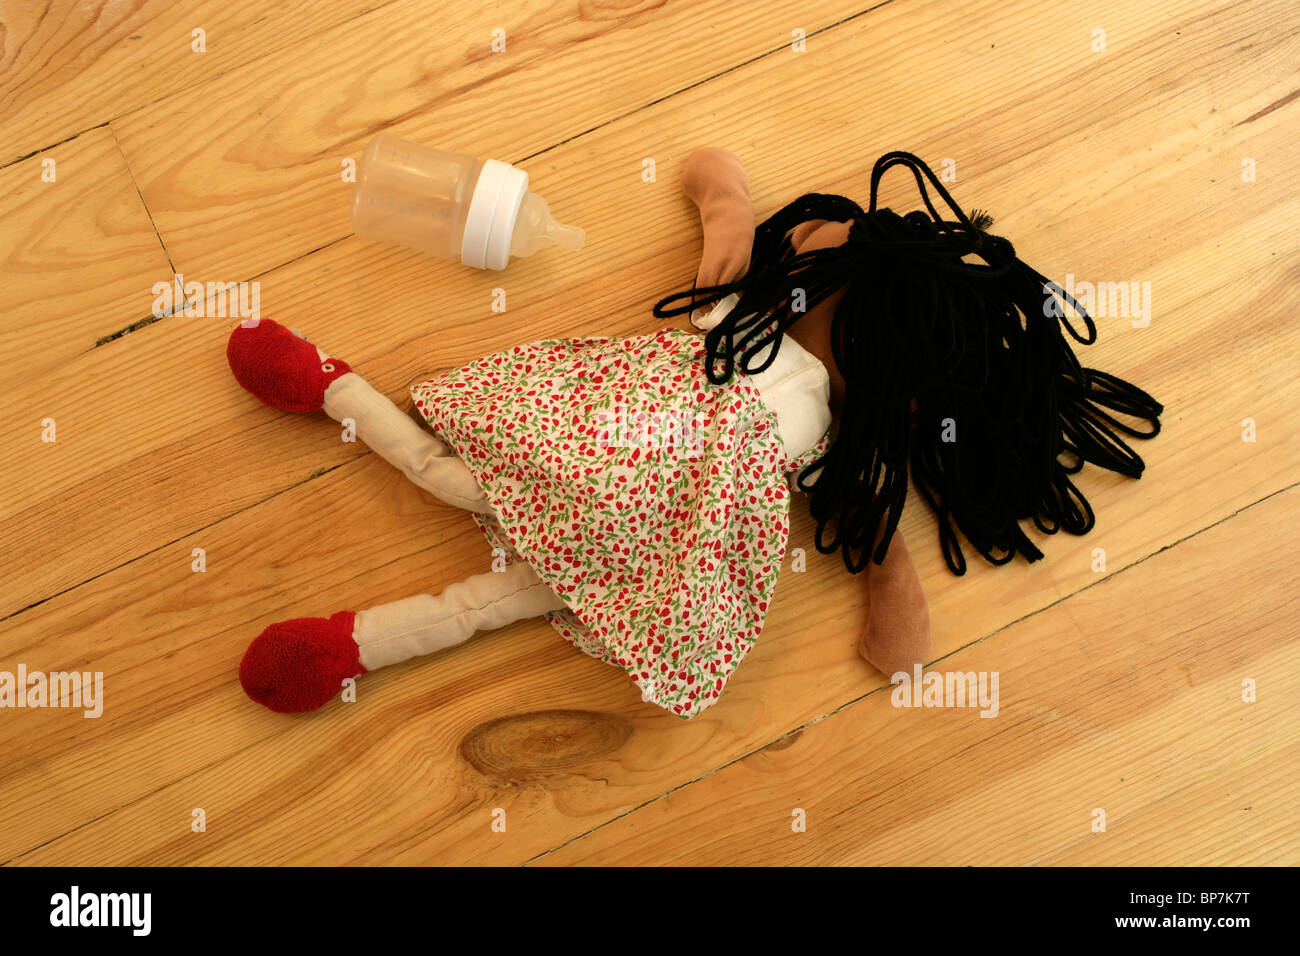 Child's ragdoll and bottle - Stock Image